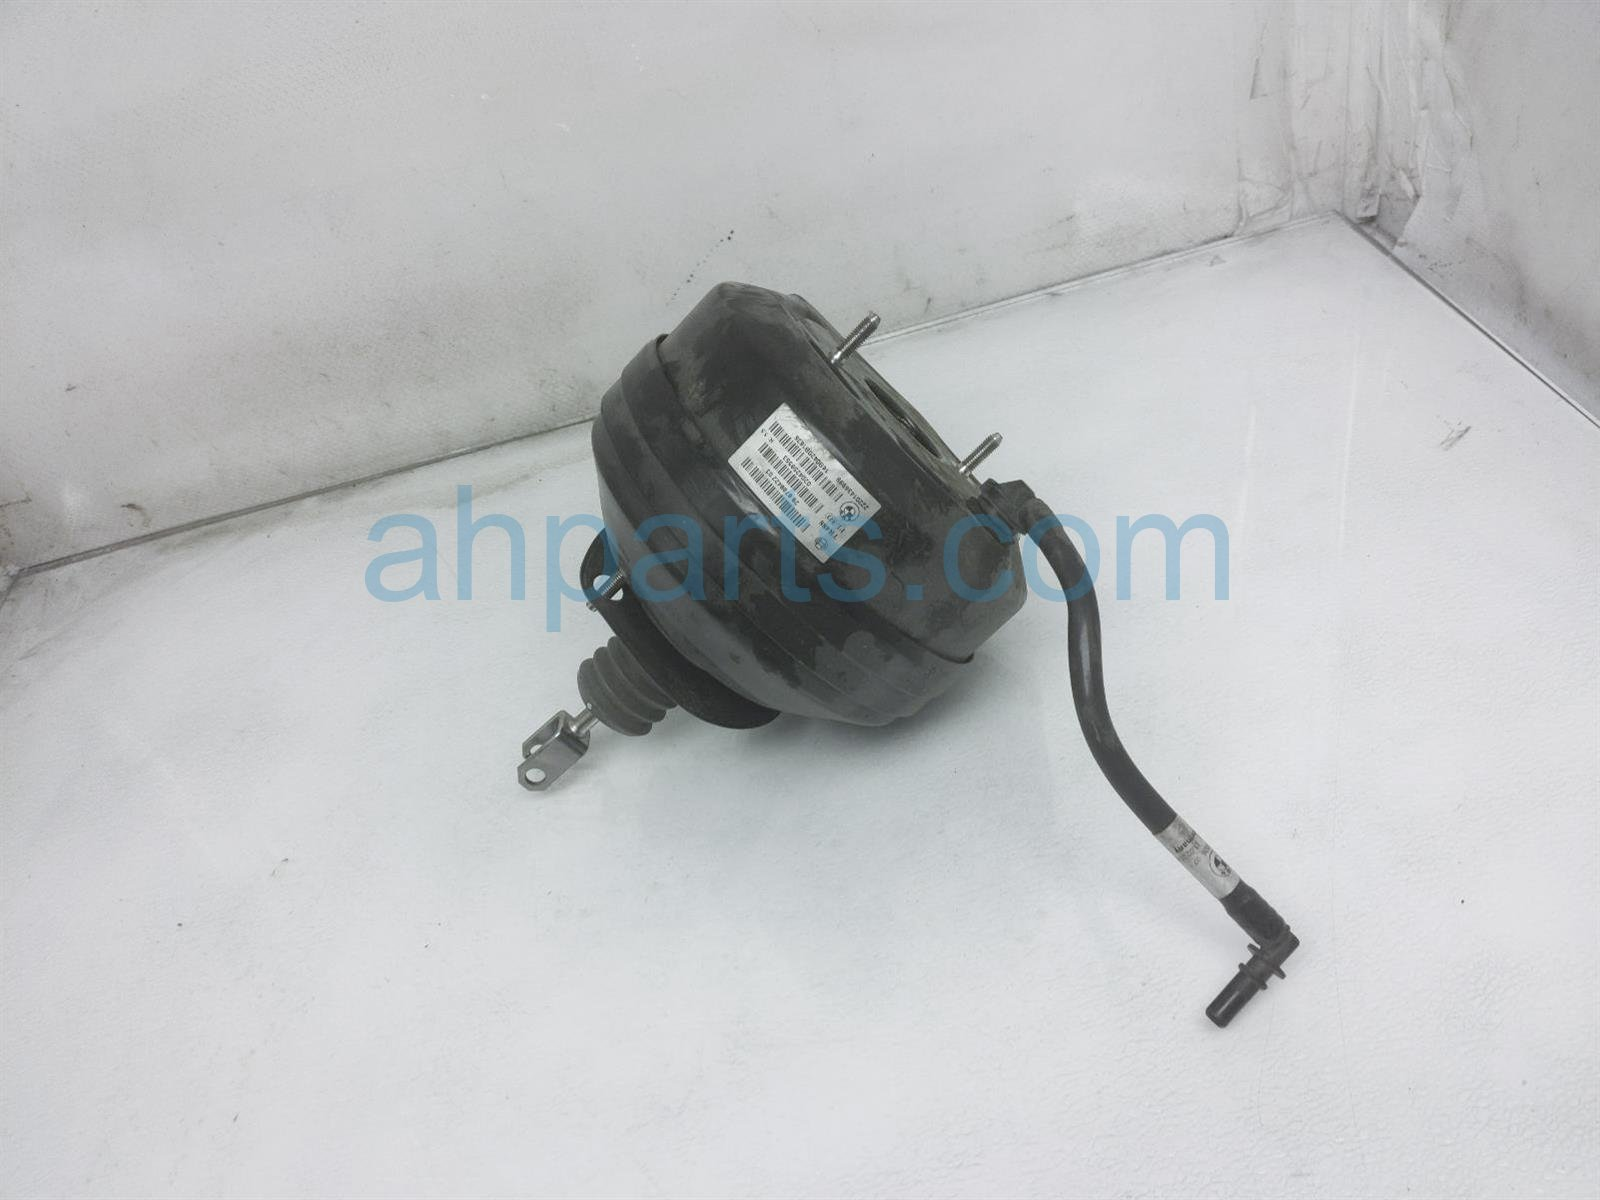 2014 BMW 328i Power Brake Booster 34 33 6 851 098 Replacement